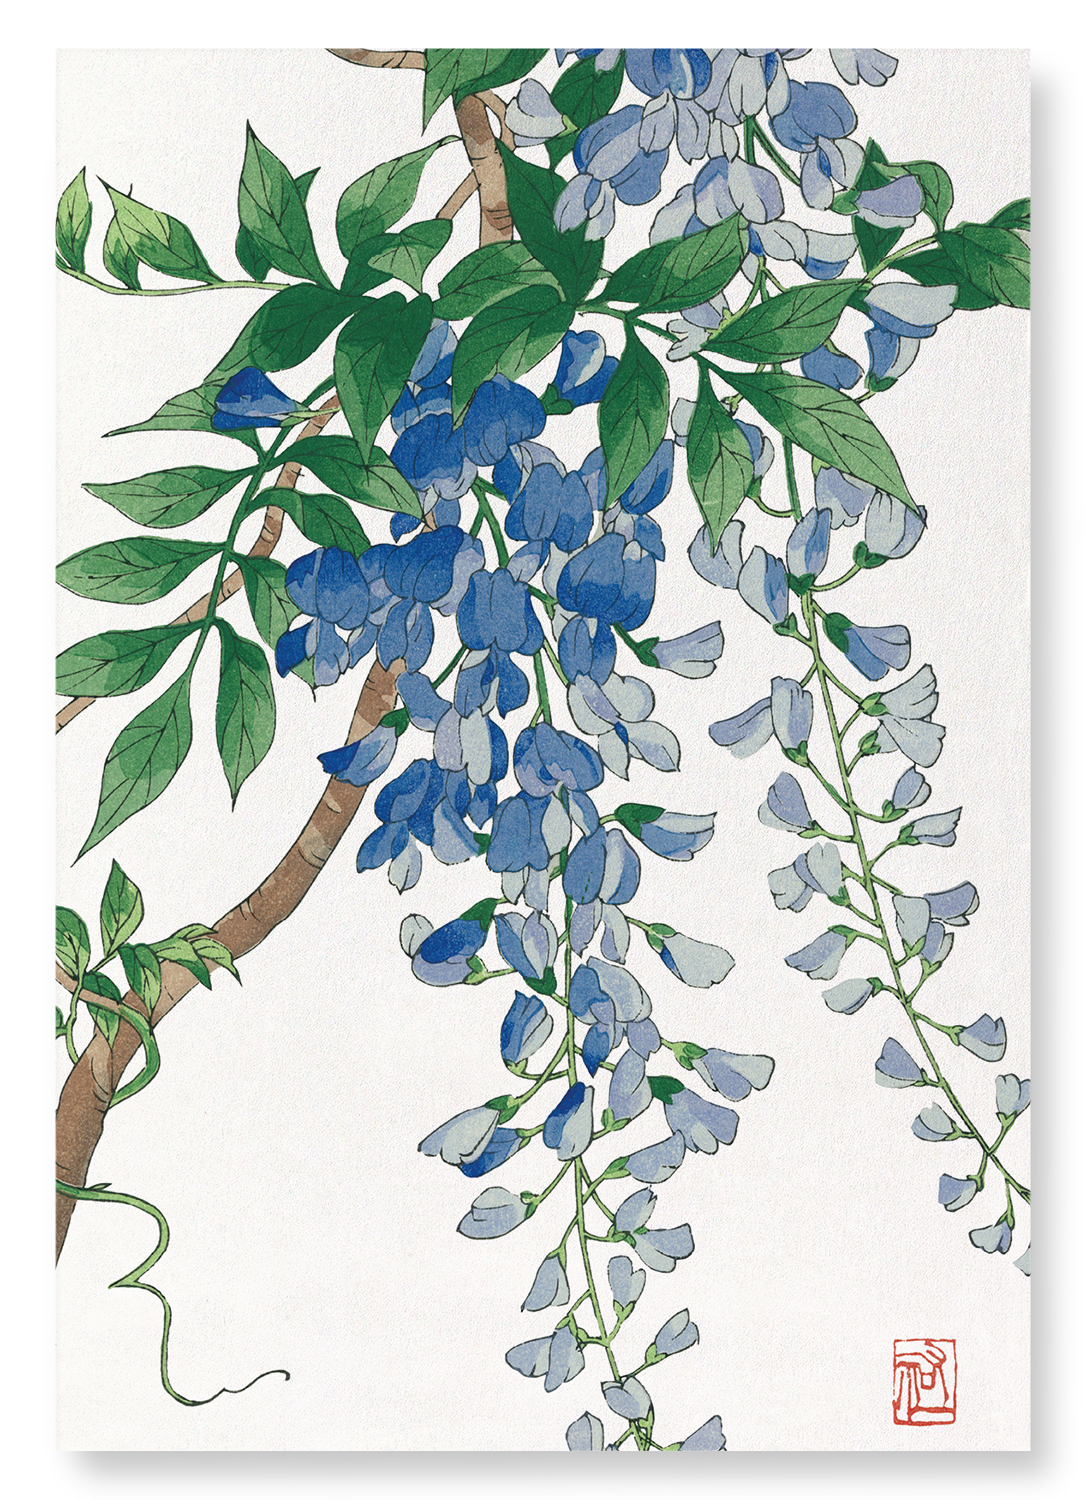 Blue wisteria: 2xPrints